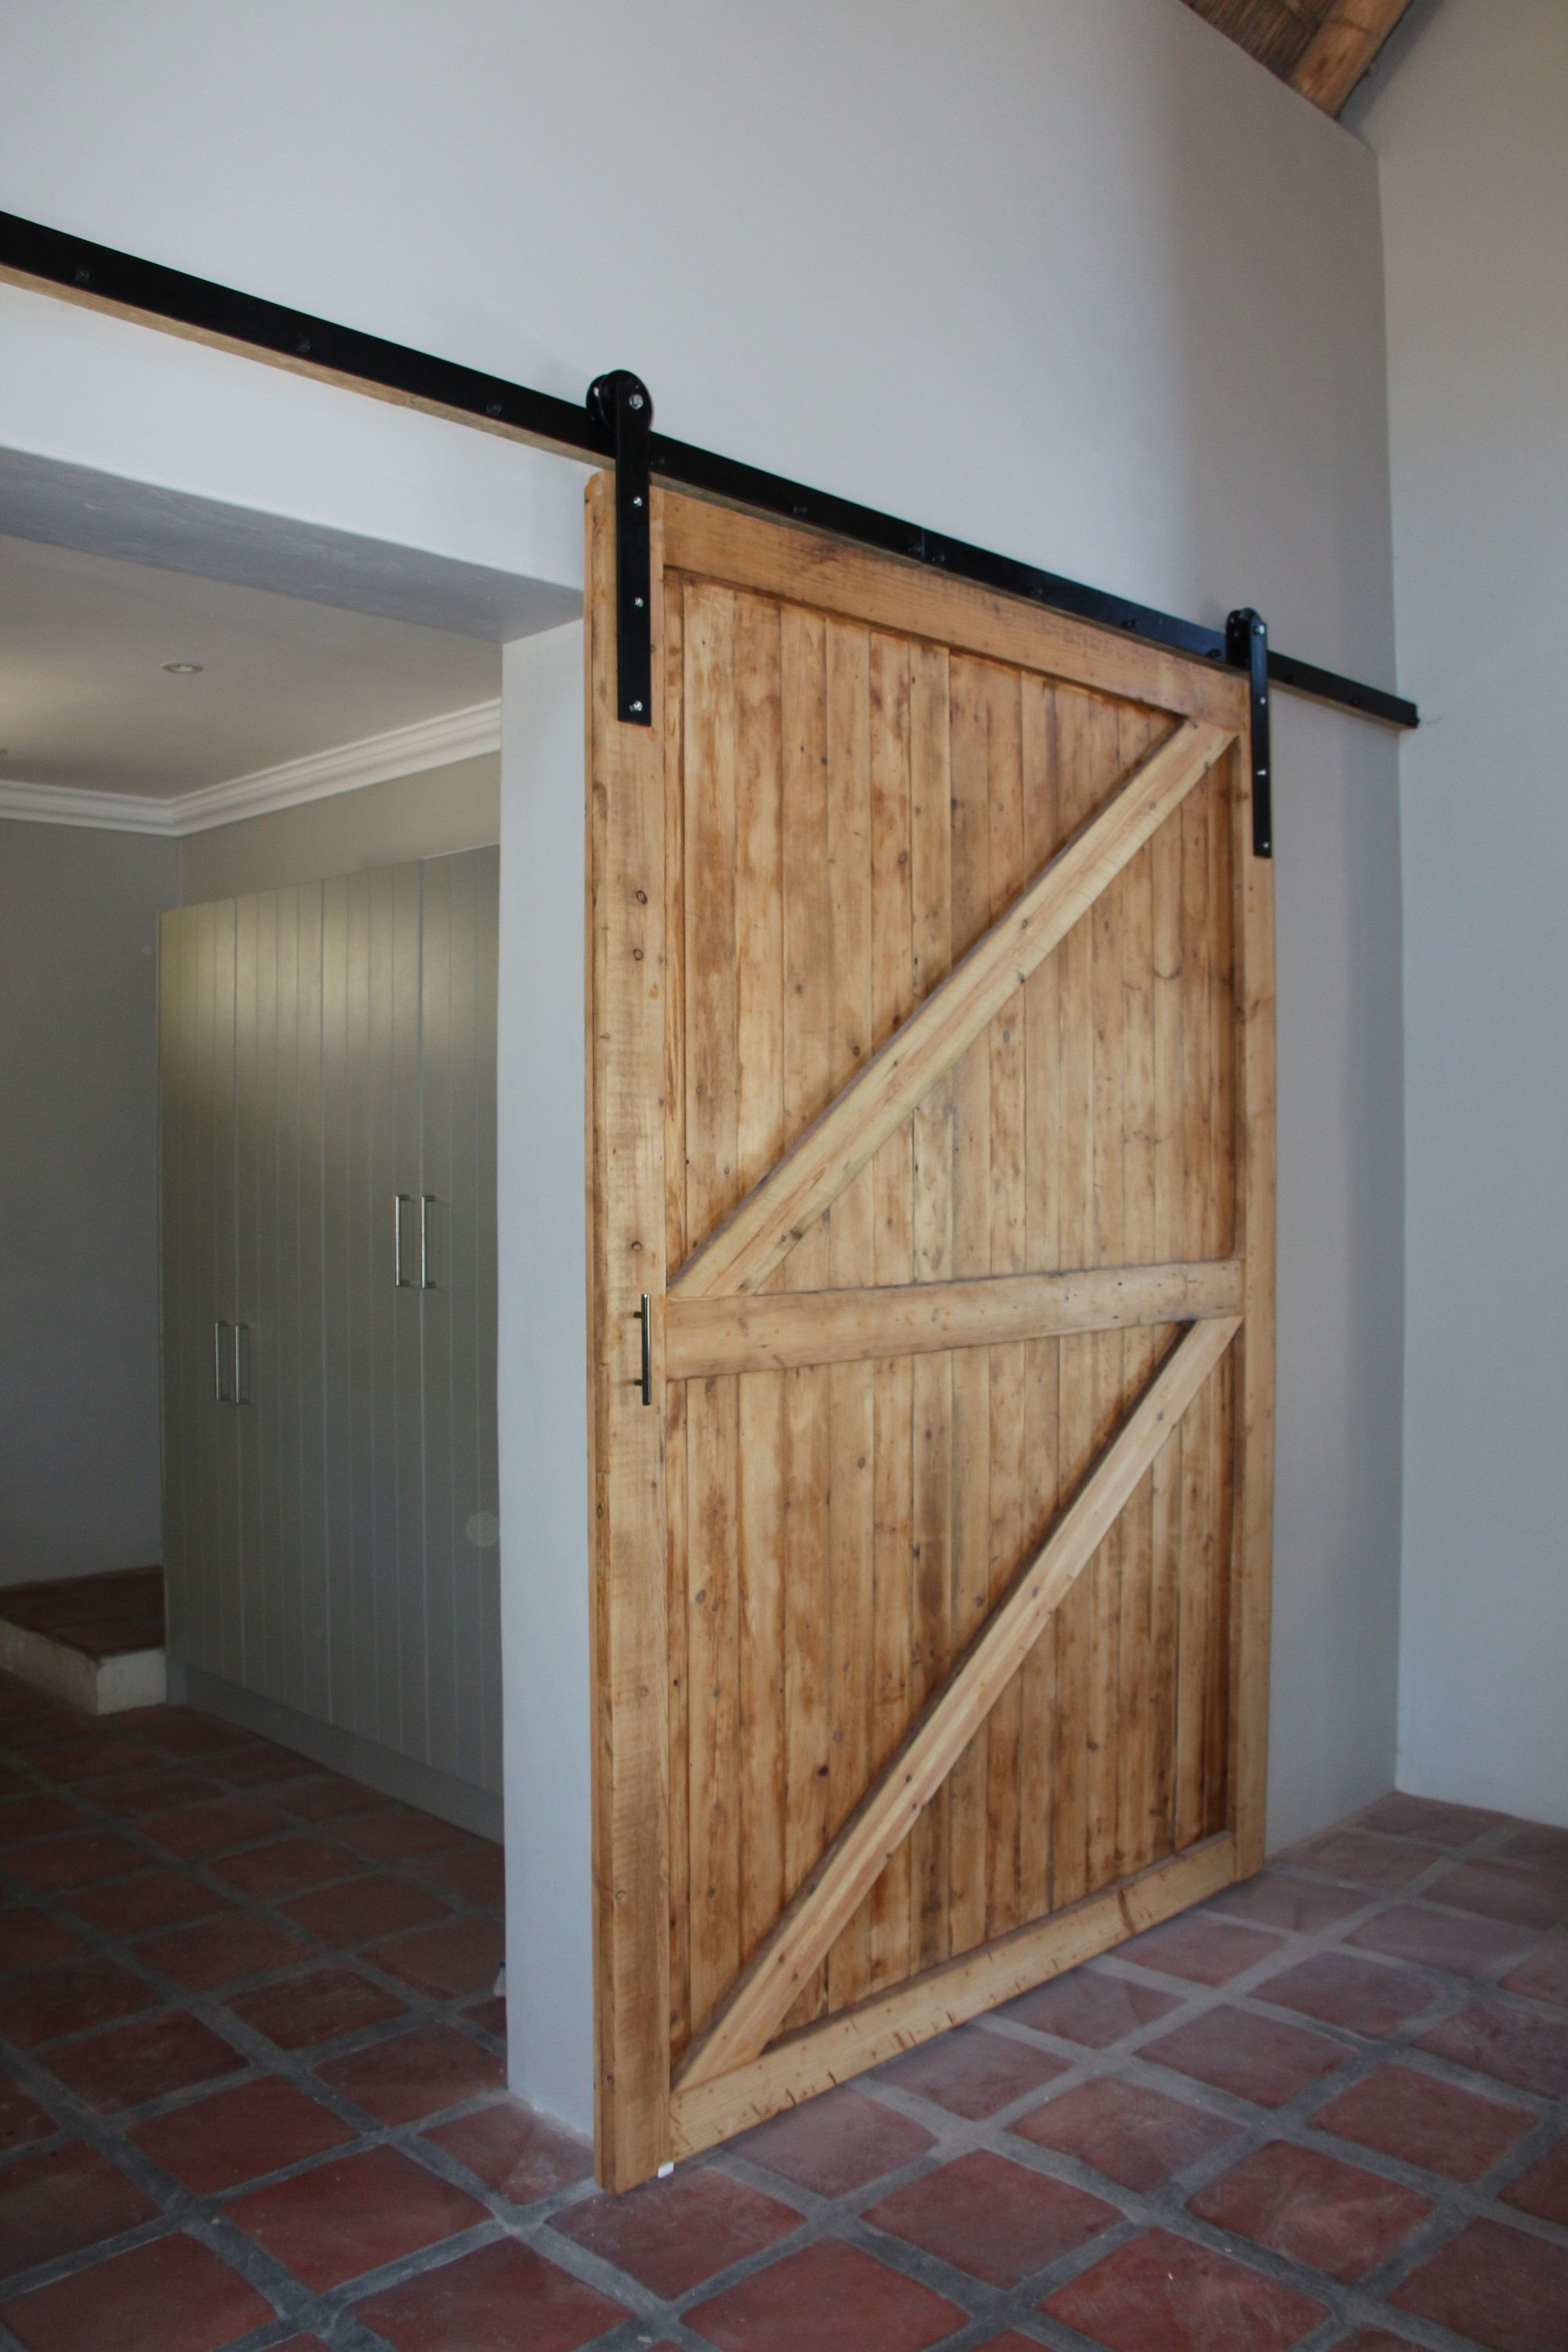 Reclaimed Oregon Pine Barn Door With Barn Door Hardware   Noordhoek, Cape  Town